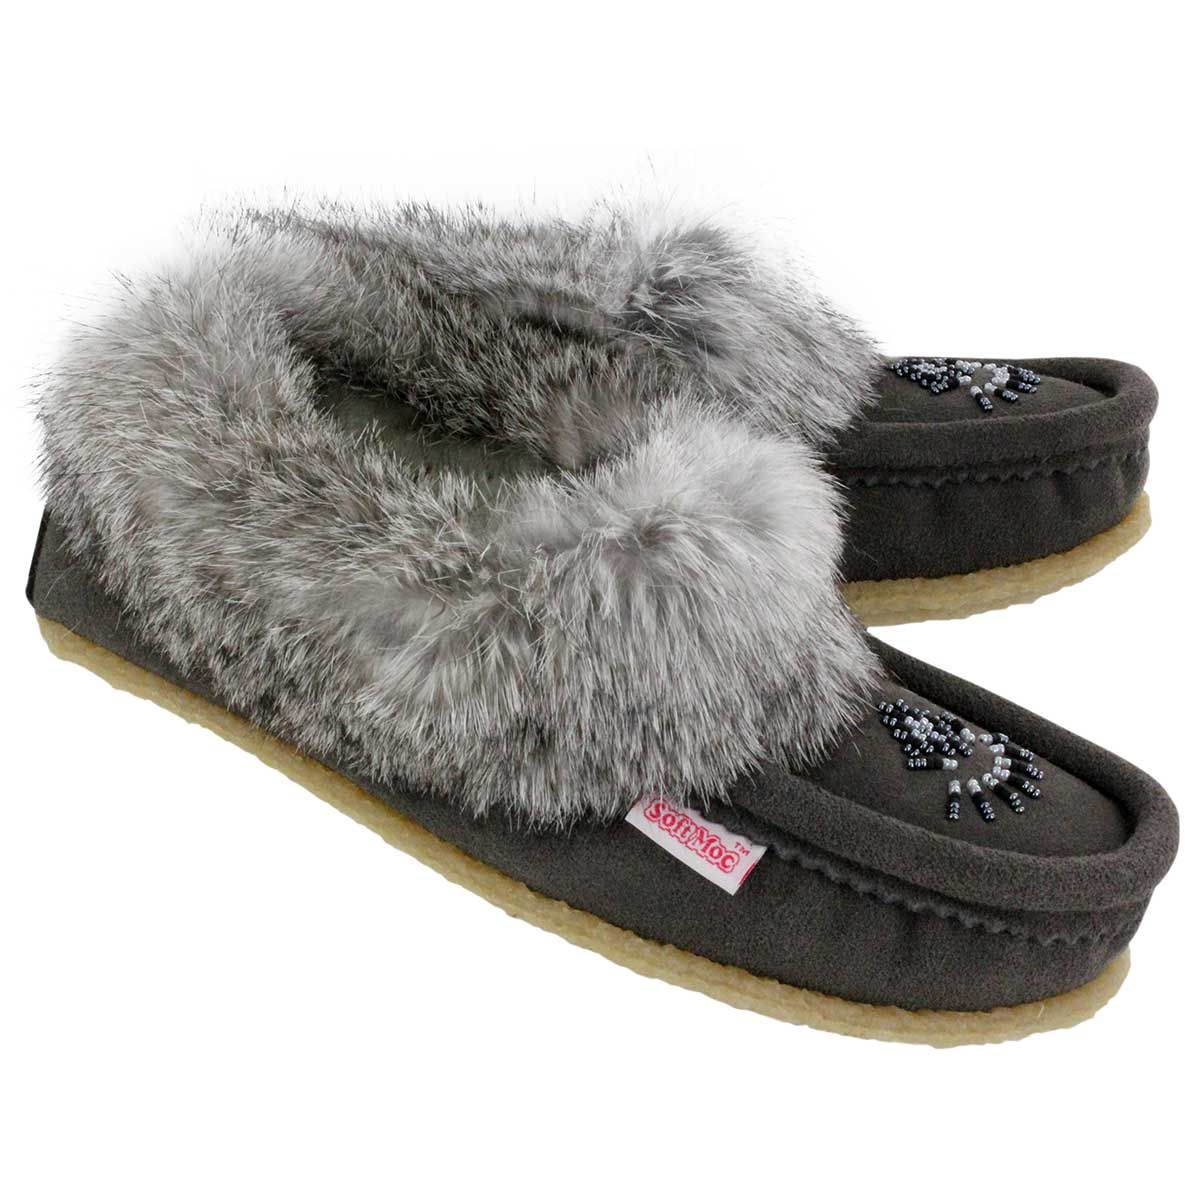 Moccasins slippers